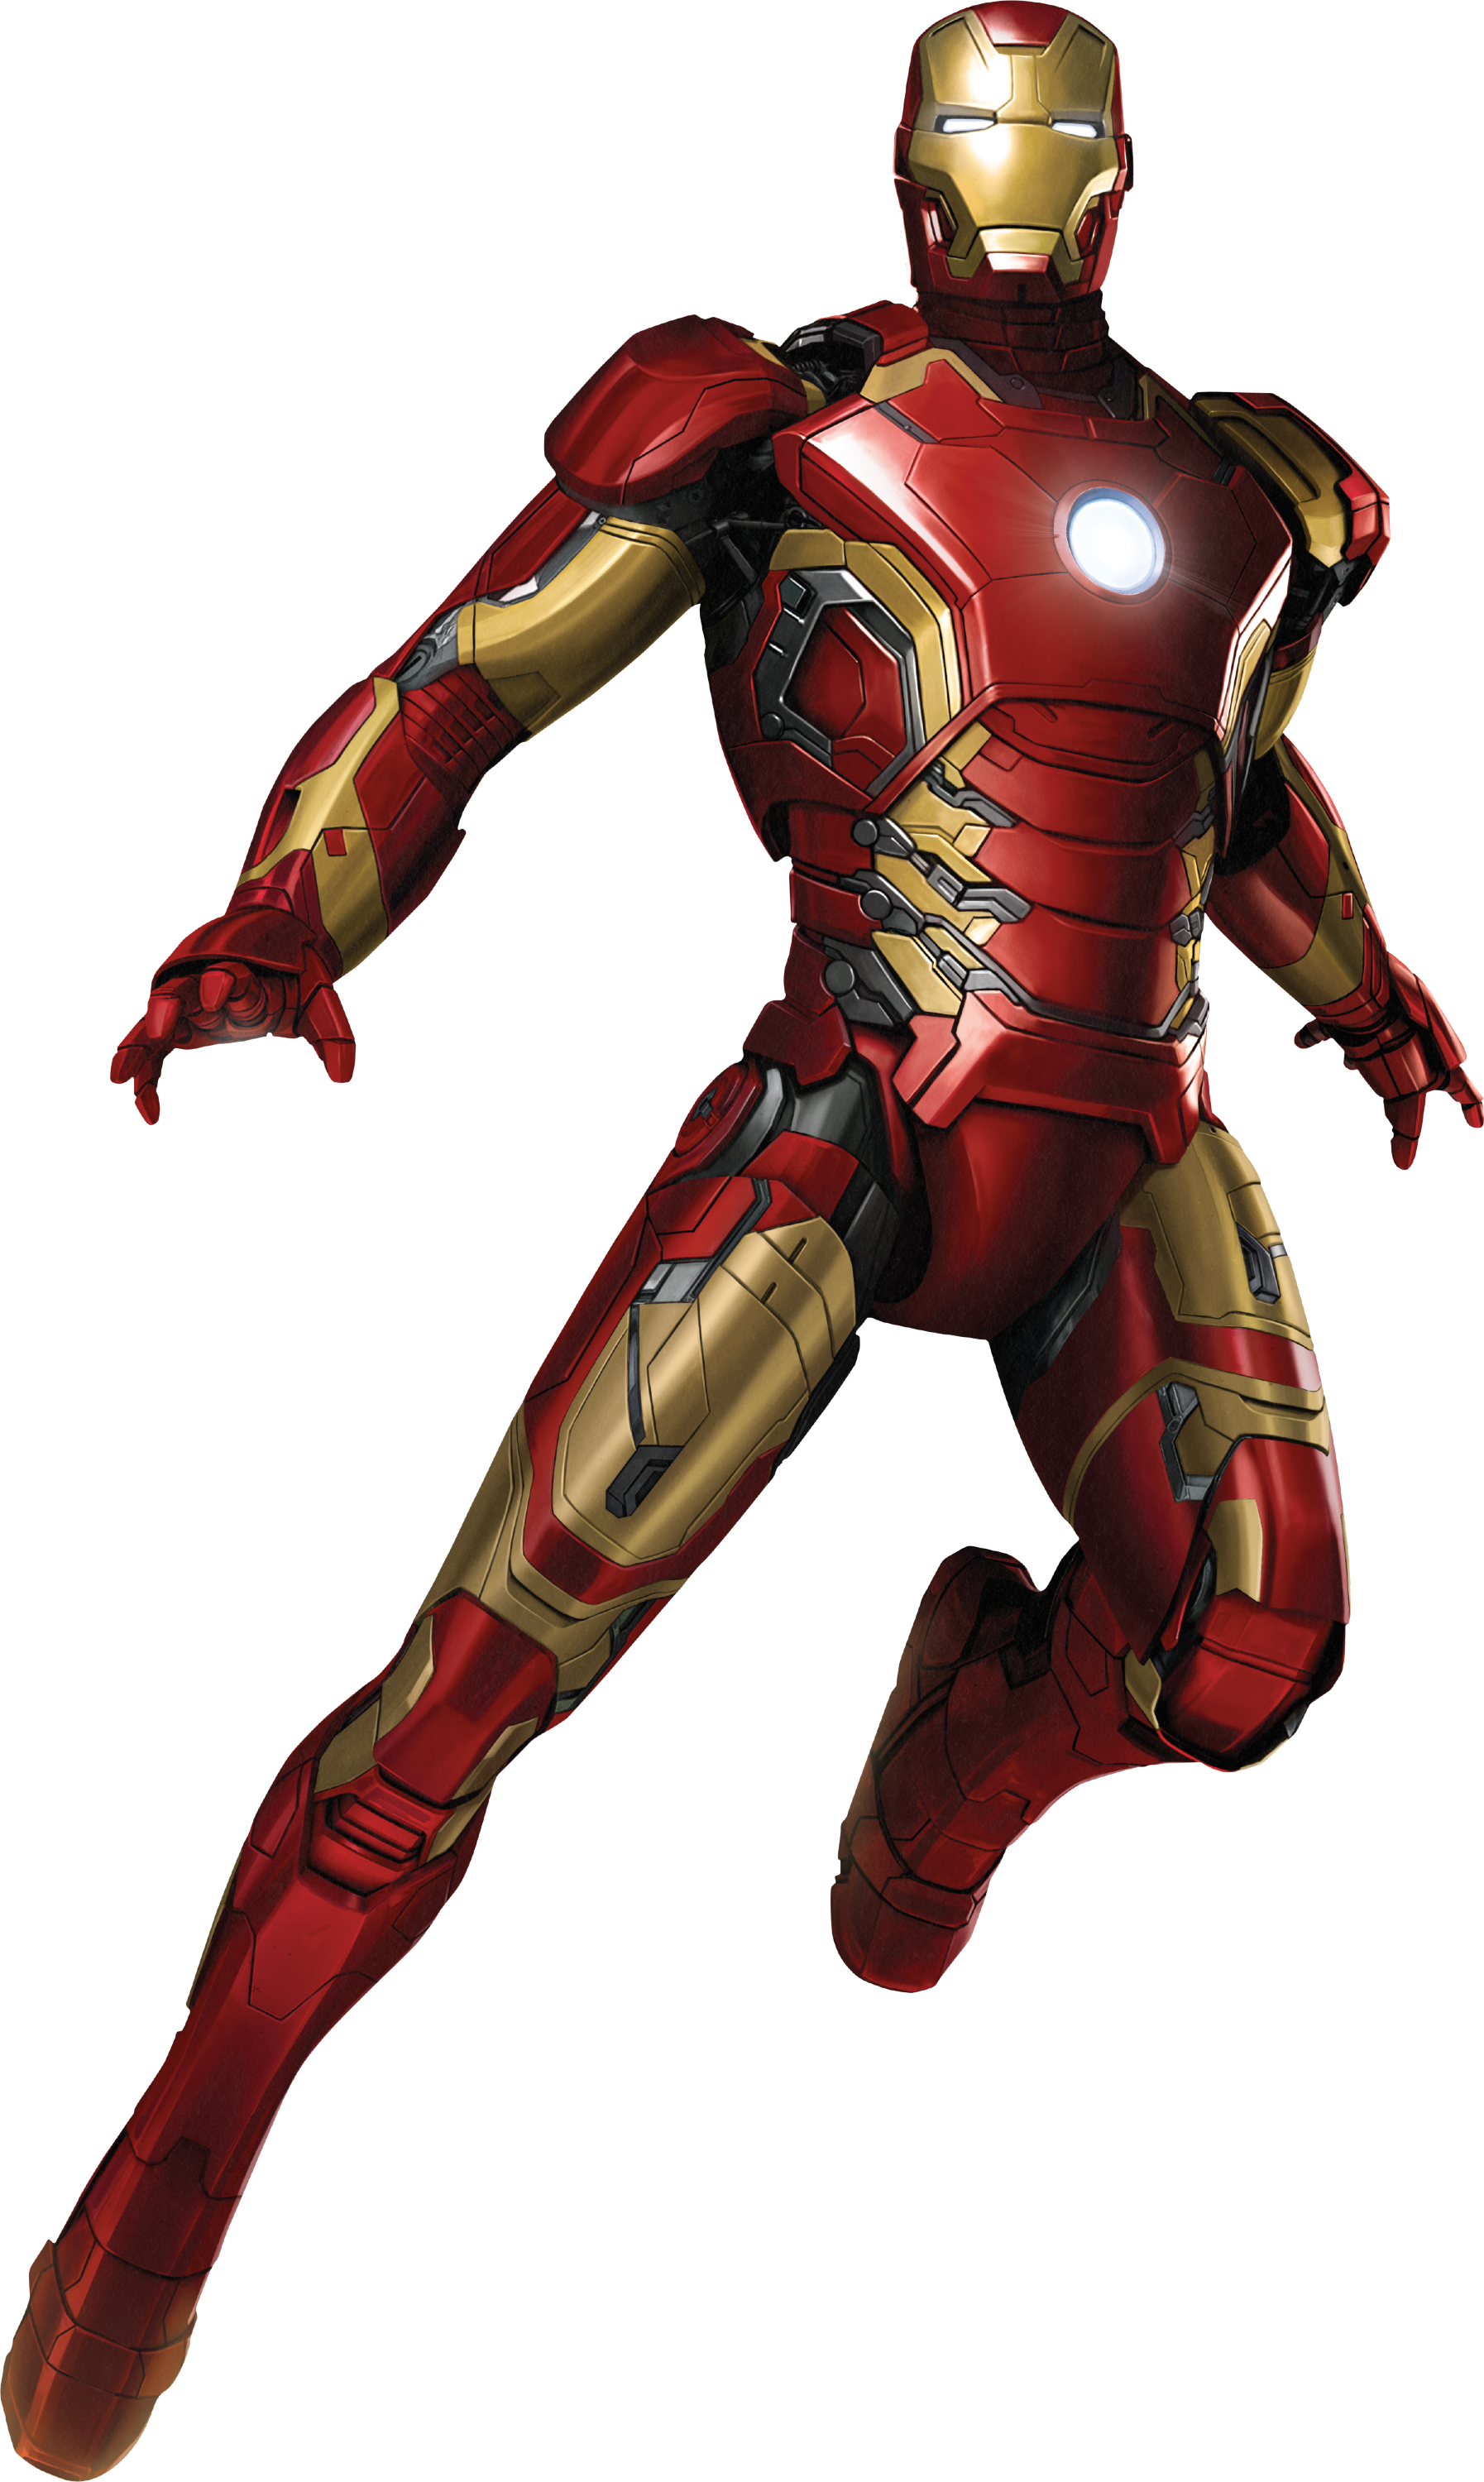 https://vignette.wikia.nocookie.net/disney/images/9/96/Iron-Man-AOU-Render.png/revision/latest?cb=20150208173247